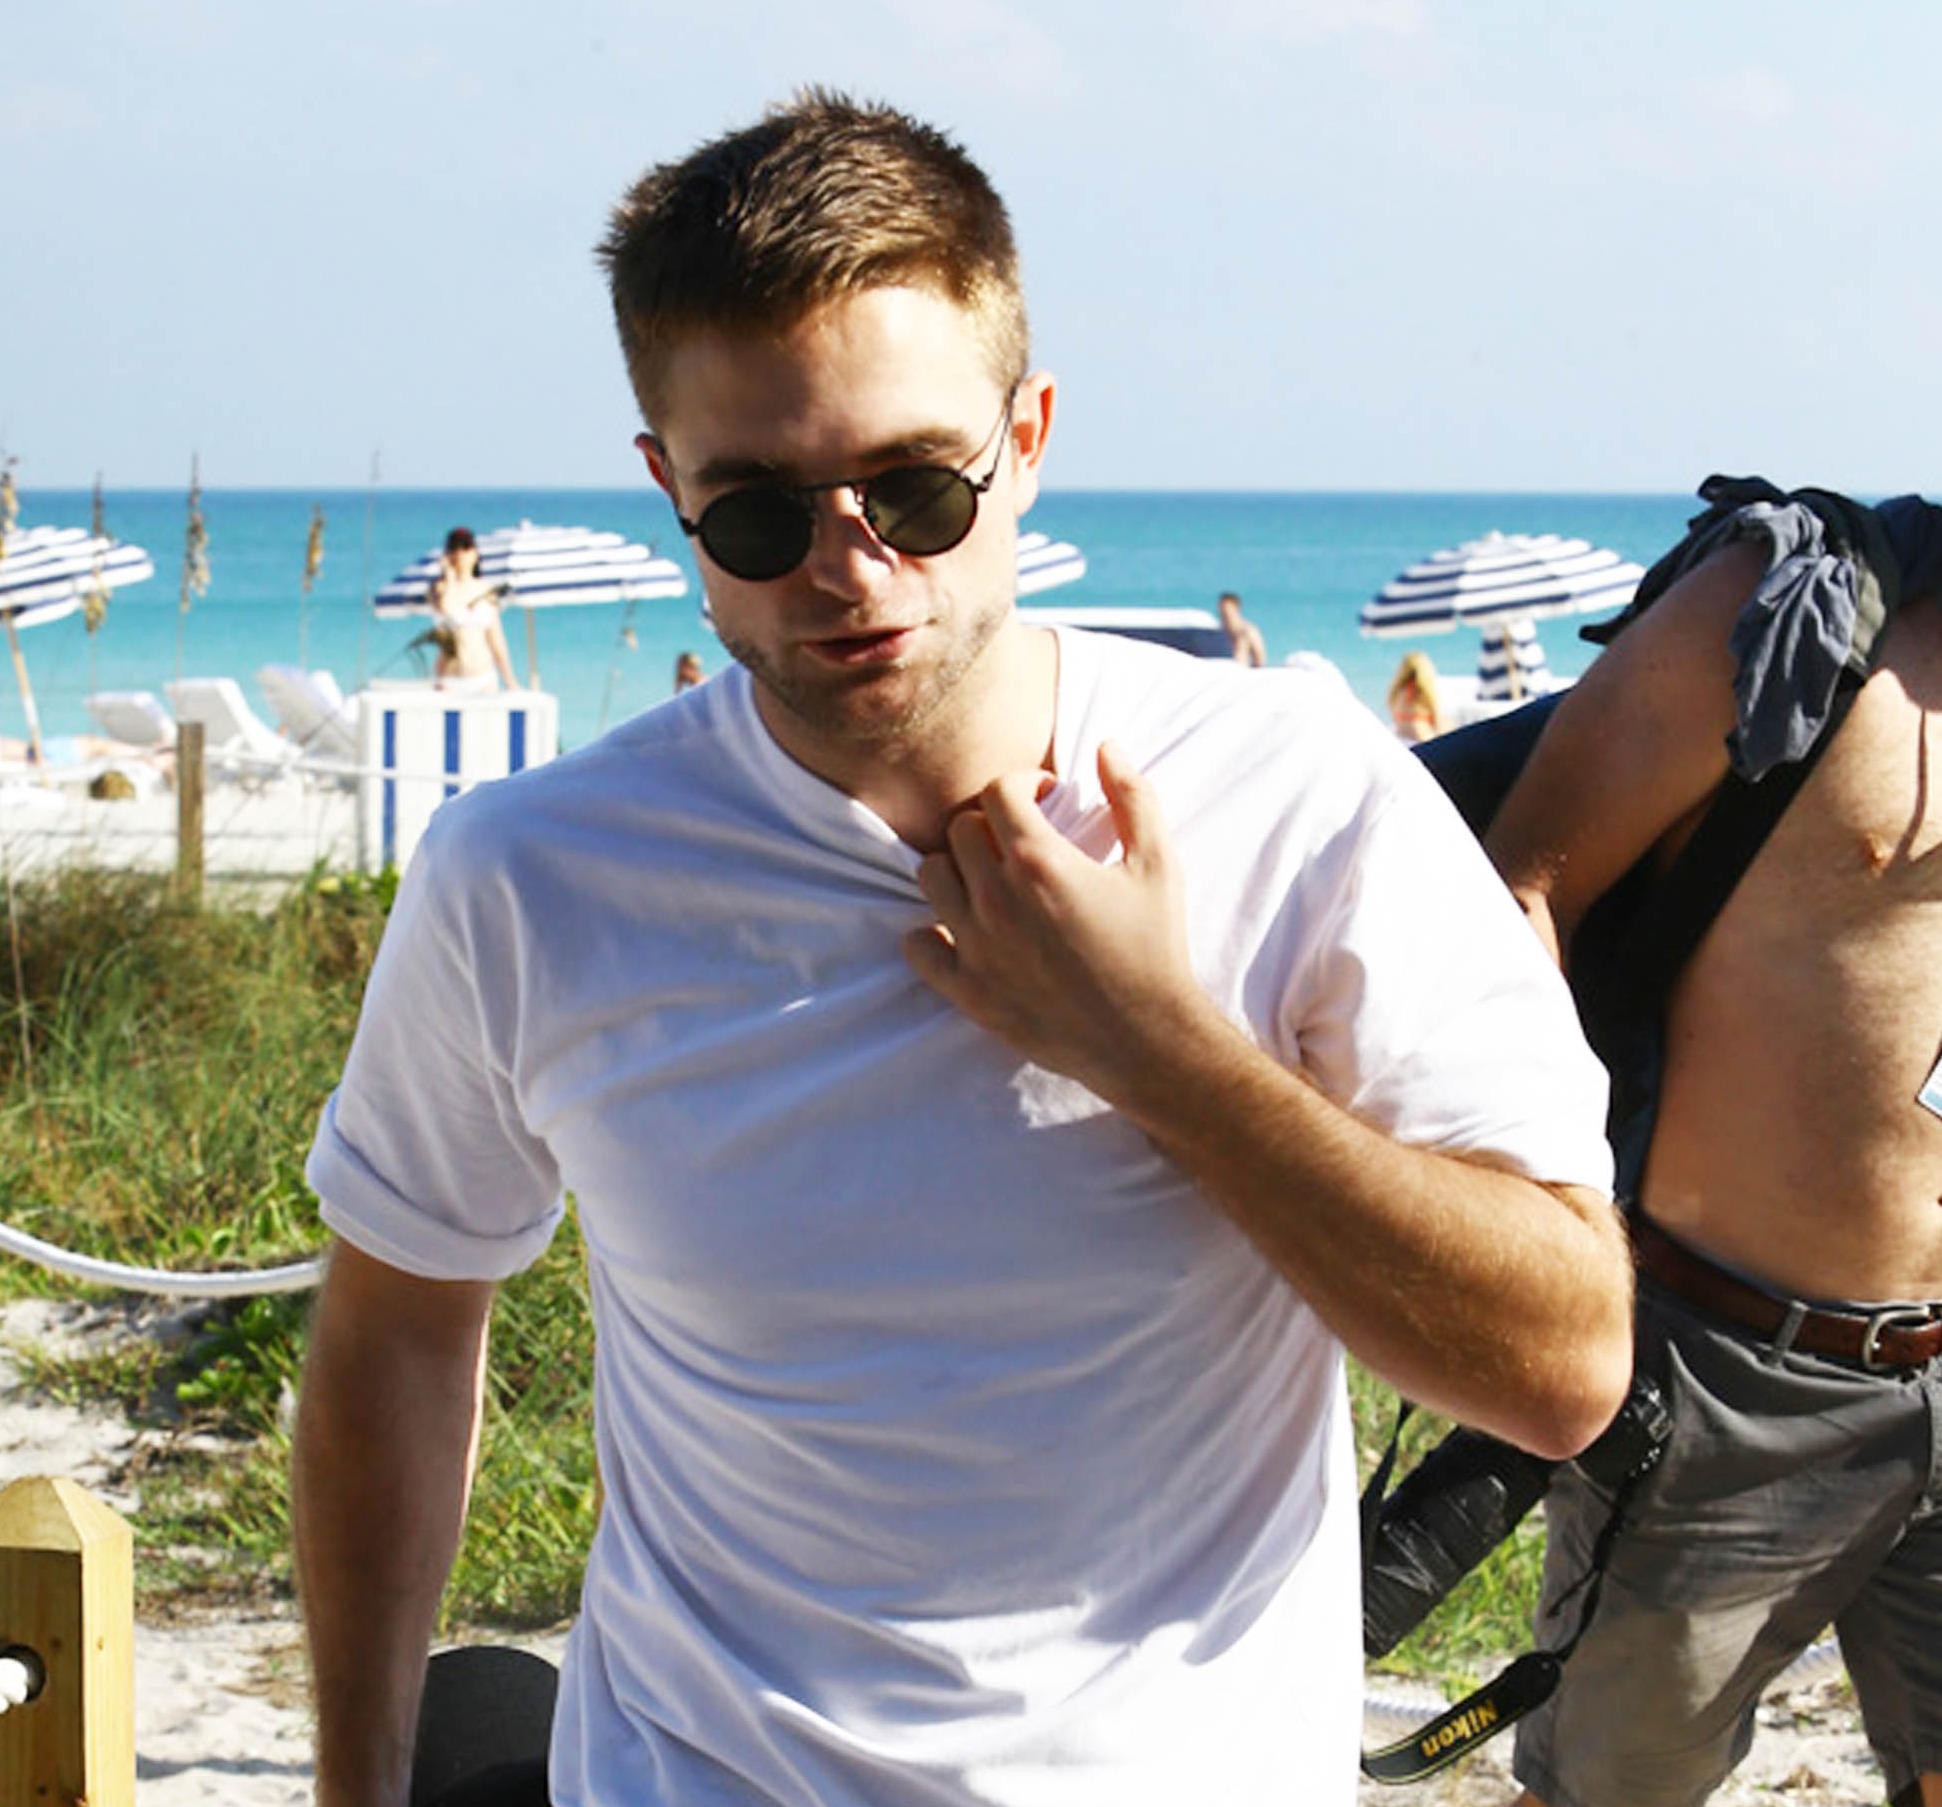 Fotos de Robert e FKA Twigs em Miami Beach (07/12)